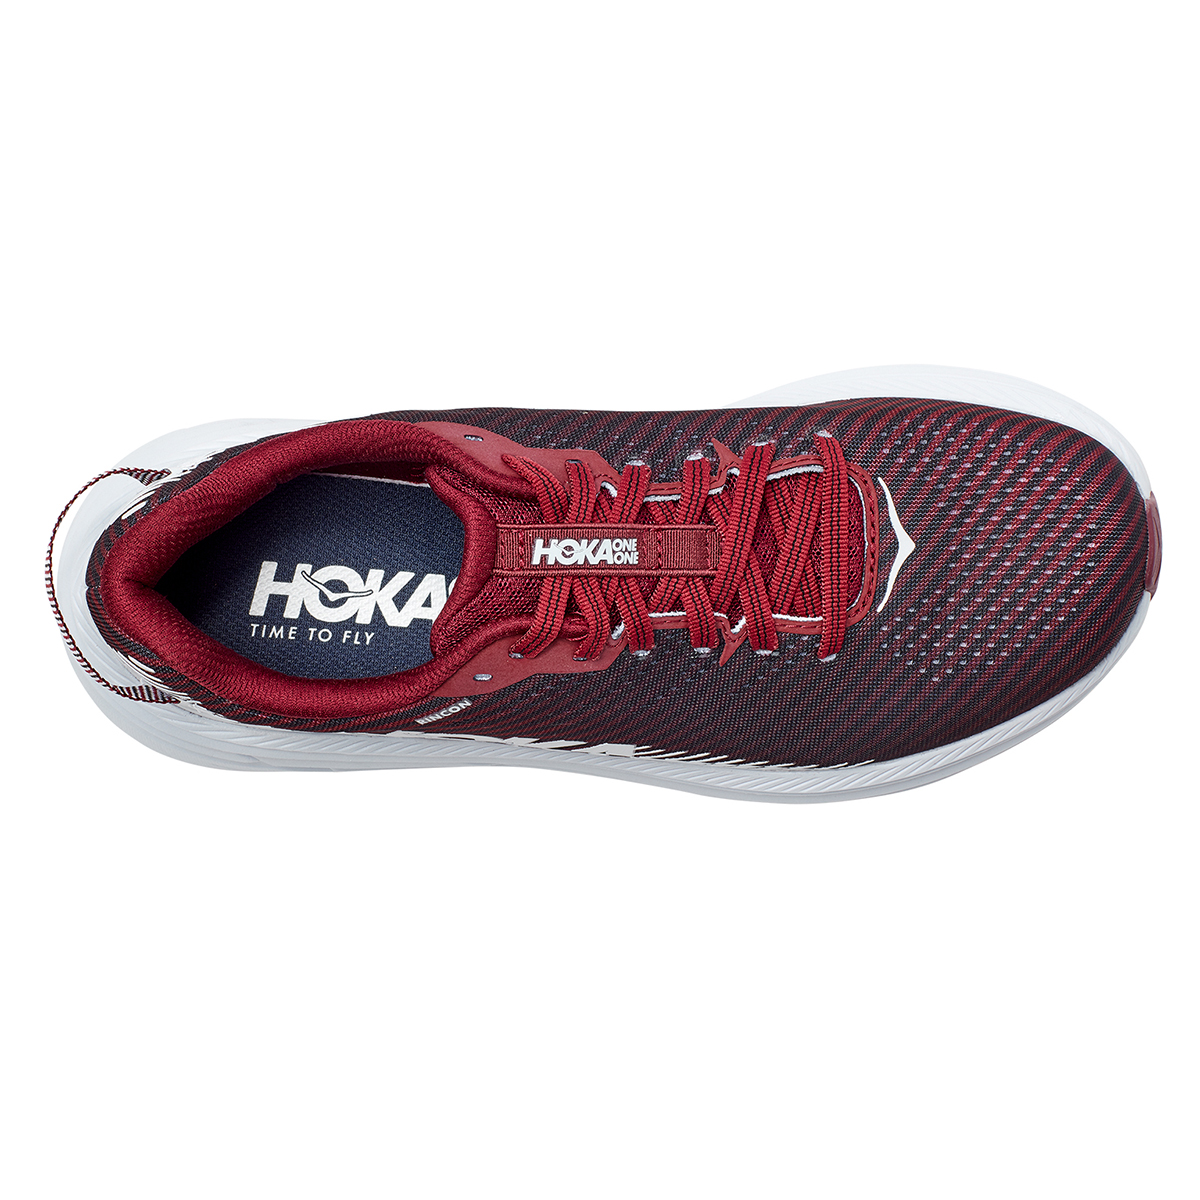 Women's Hoka One One Rincon 2 Running Shoe - Color: Cordovan/White - Size: 5 - Width: Regular, Cordovan/White, large, image 2